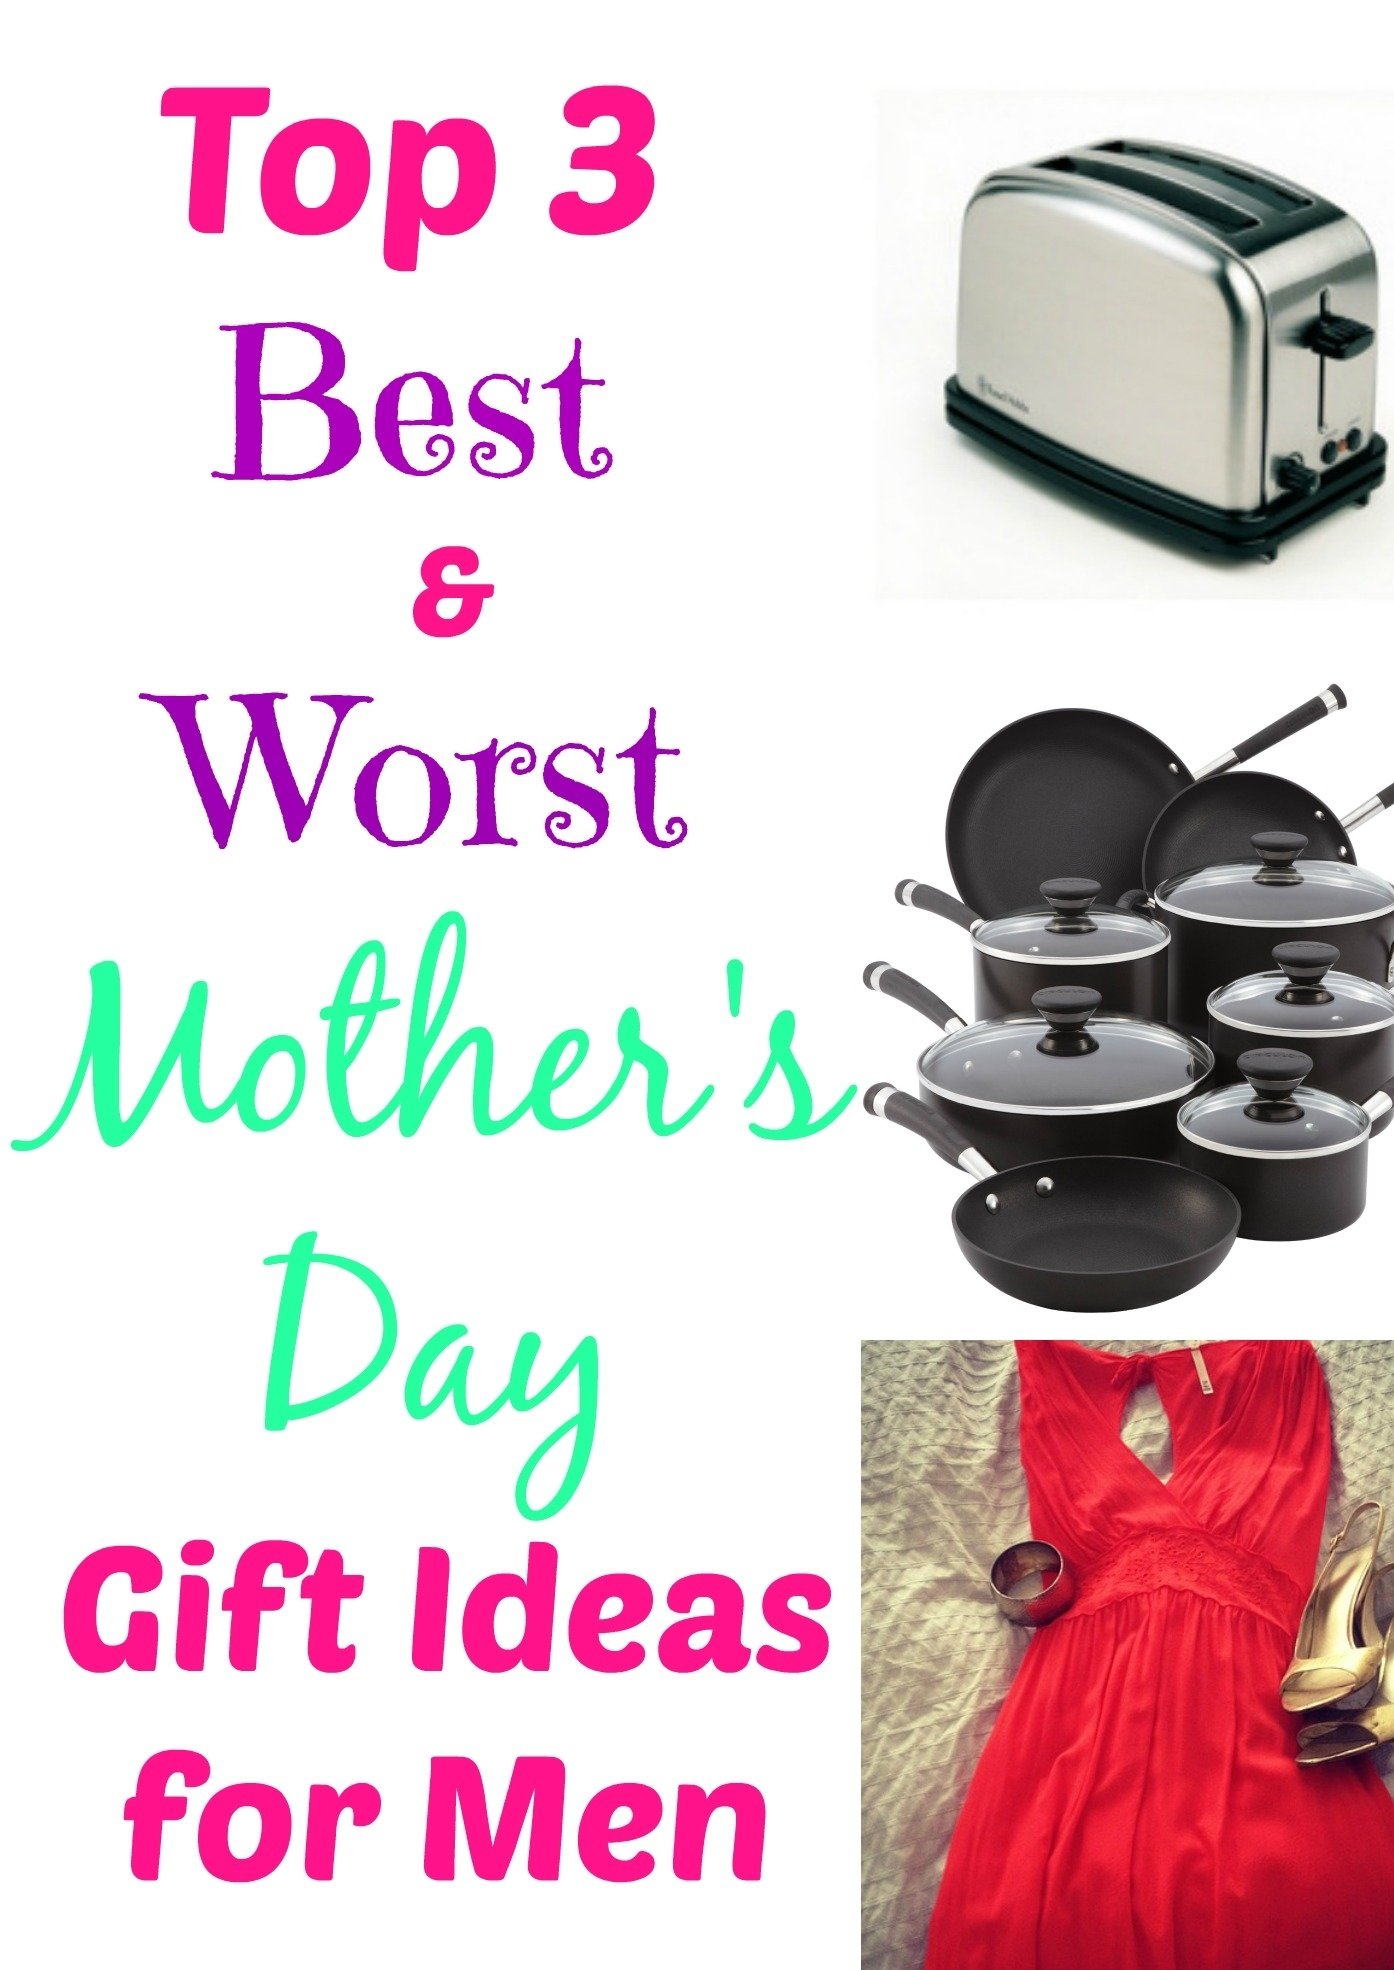 10 Cute Good Mothers Day Gifts Ideas top 3 best worst mothers day gift ideas for men 6 2020